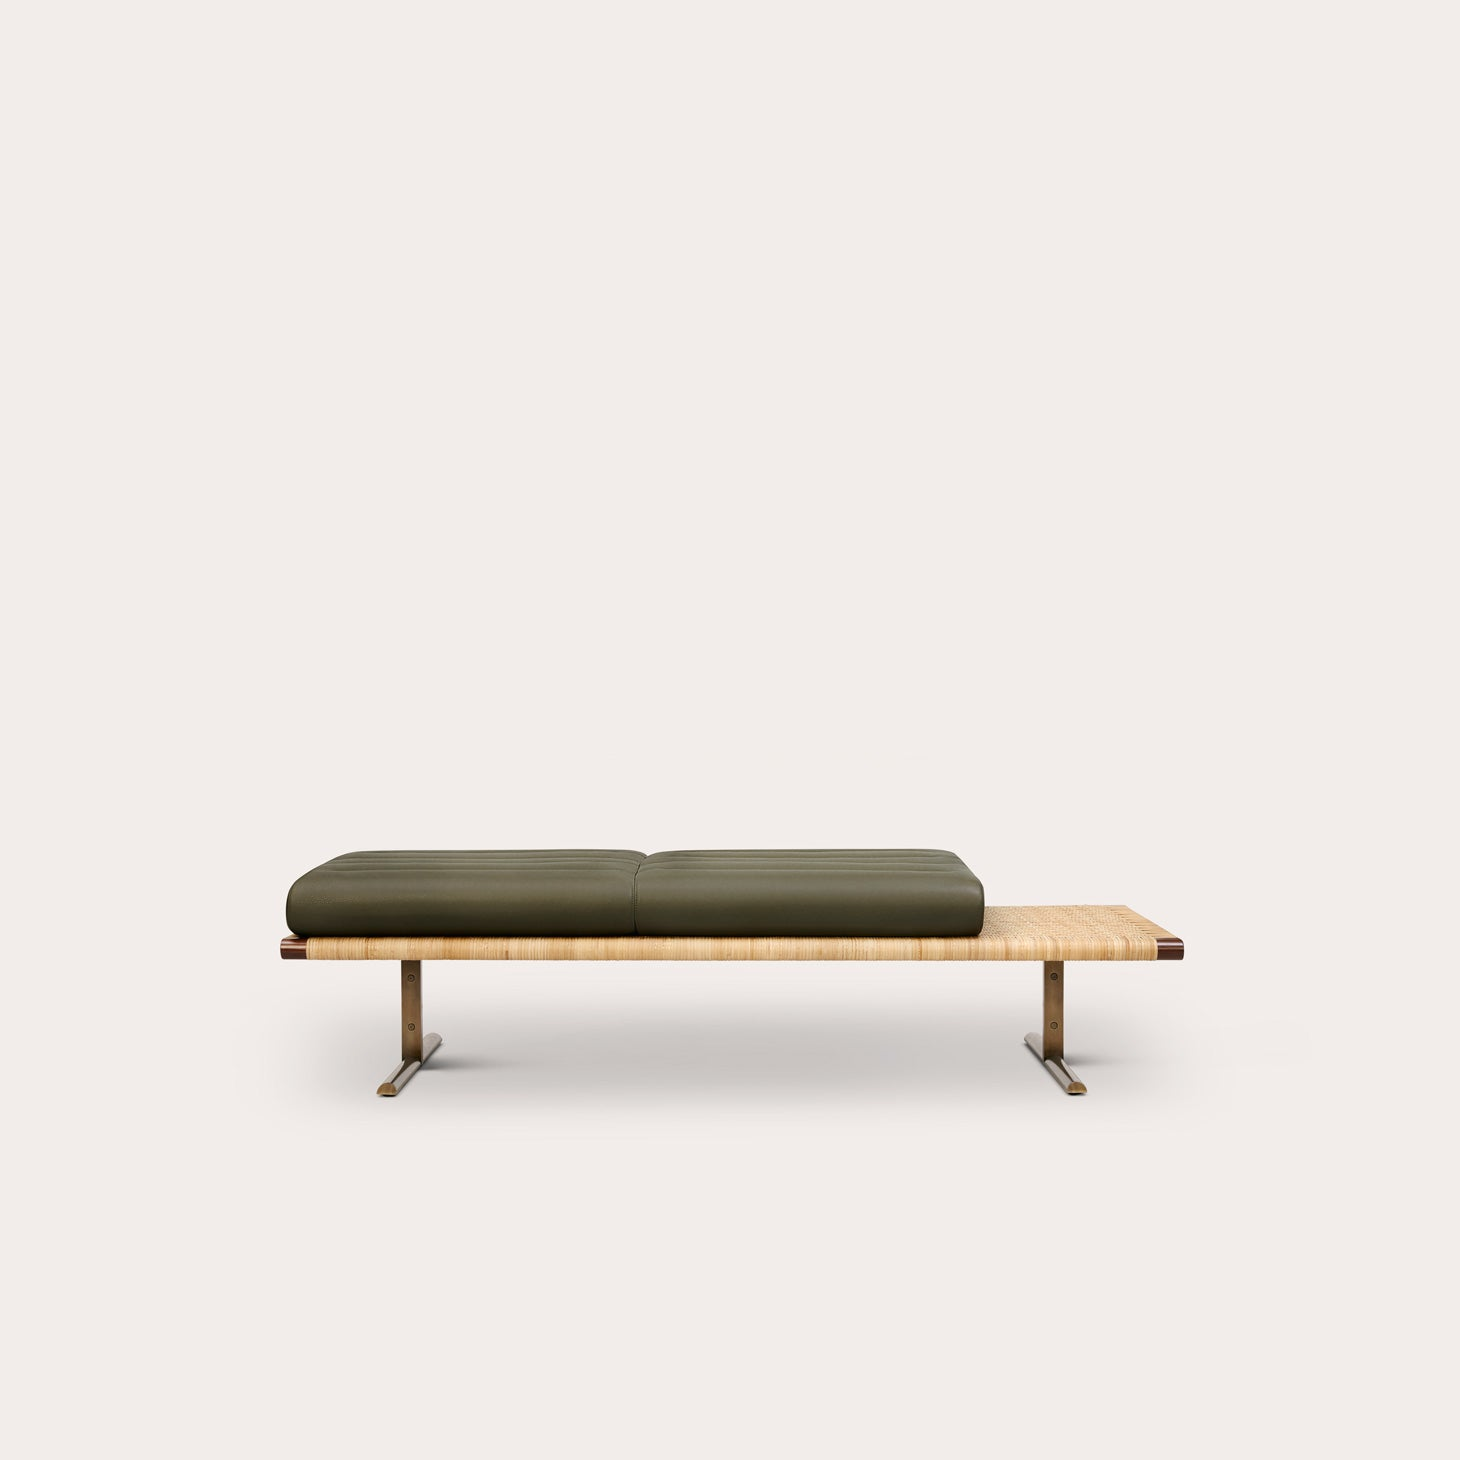 El Raval Bench Seating Yabu Pushelberg Designer Furniture Sku: 758-240-10251